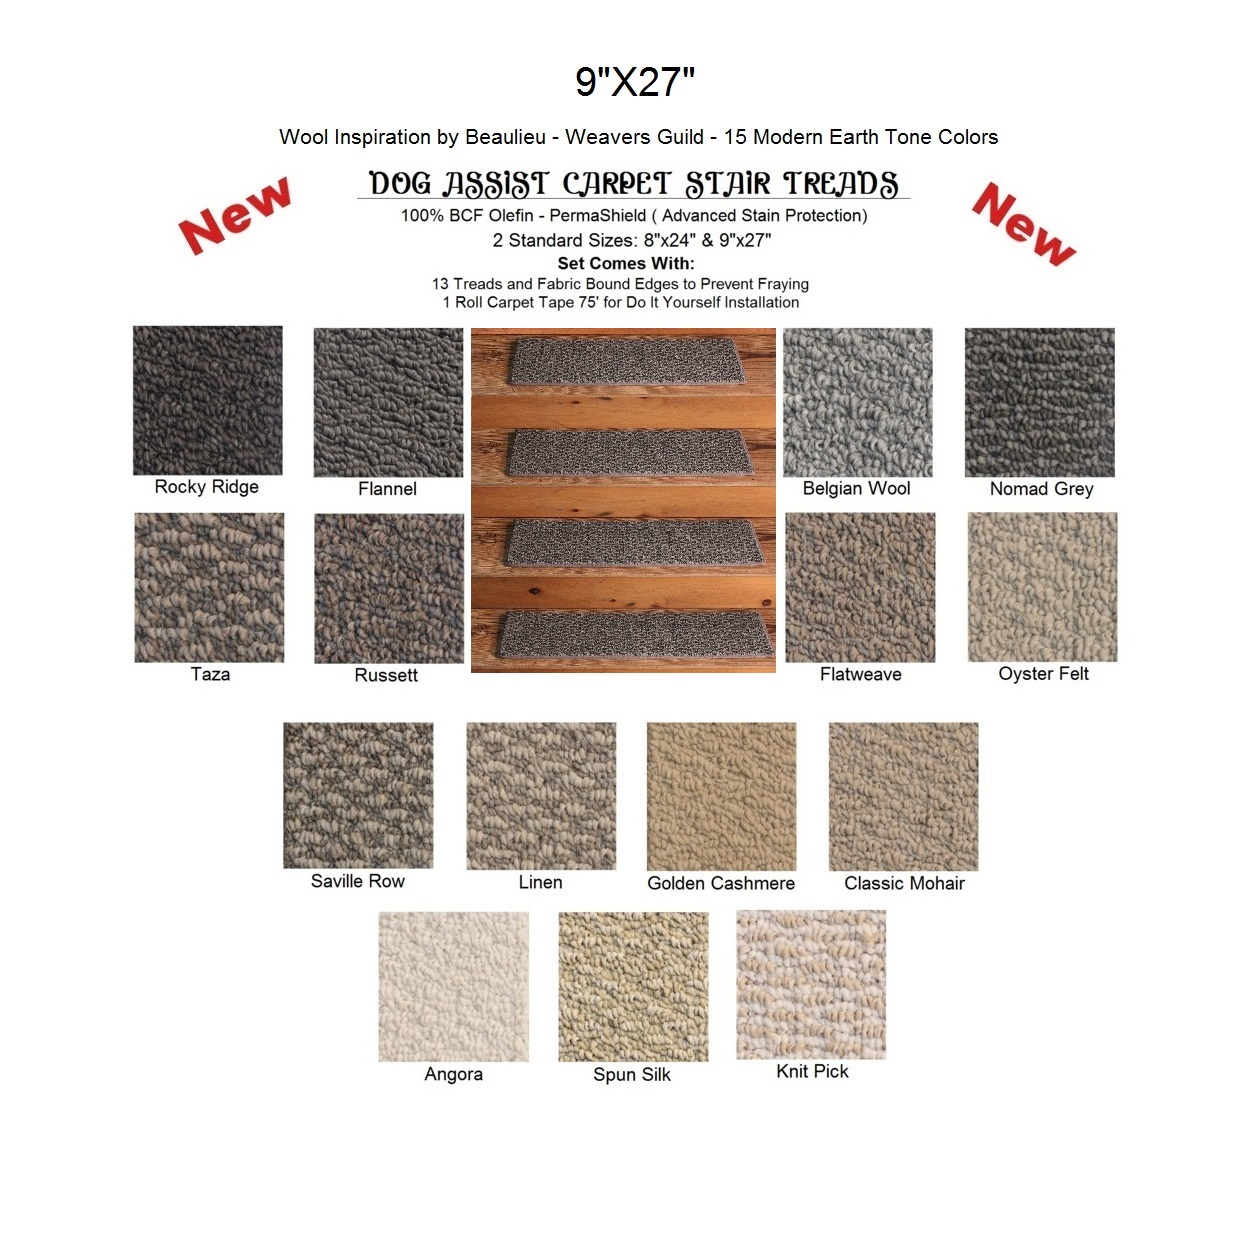 Weavers Guild Ii Dog Ist Carpet Stair Treads 9 X27 13 Per Set 15 Earth Tone Colors To Choose From